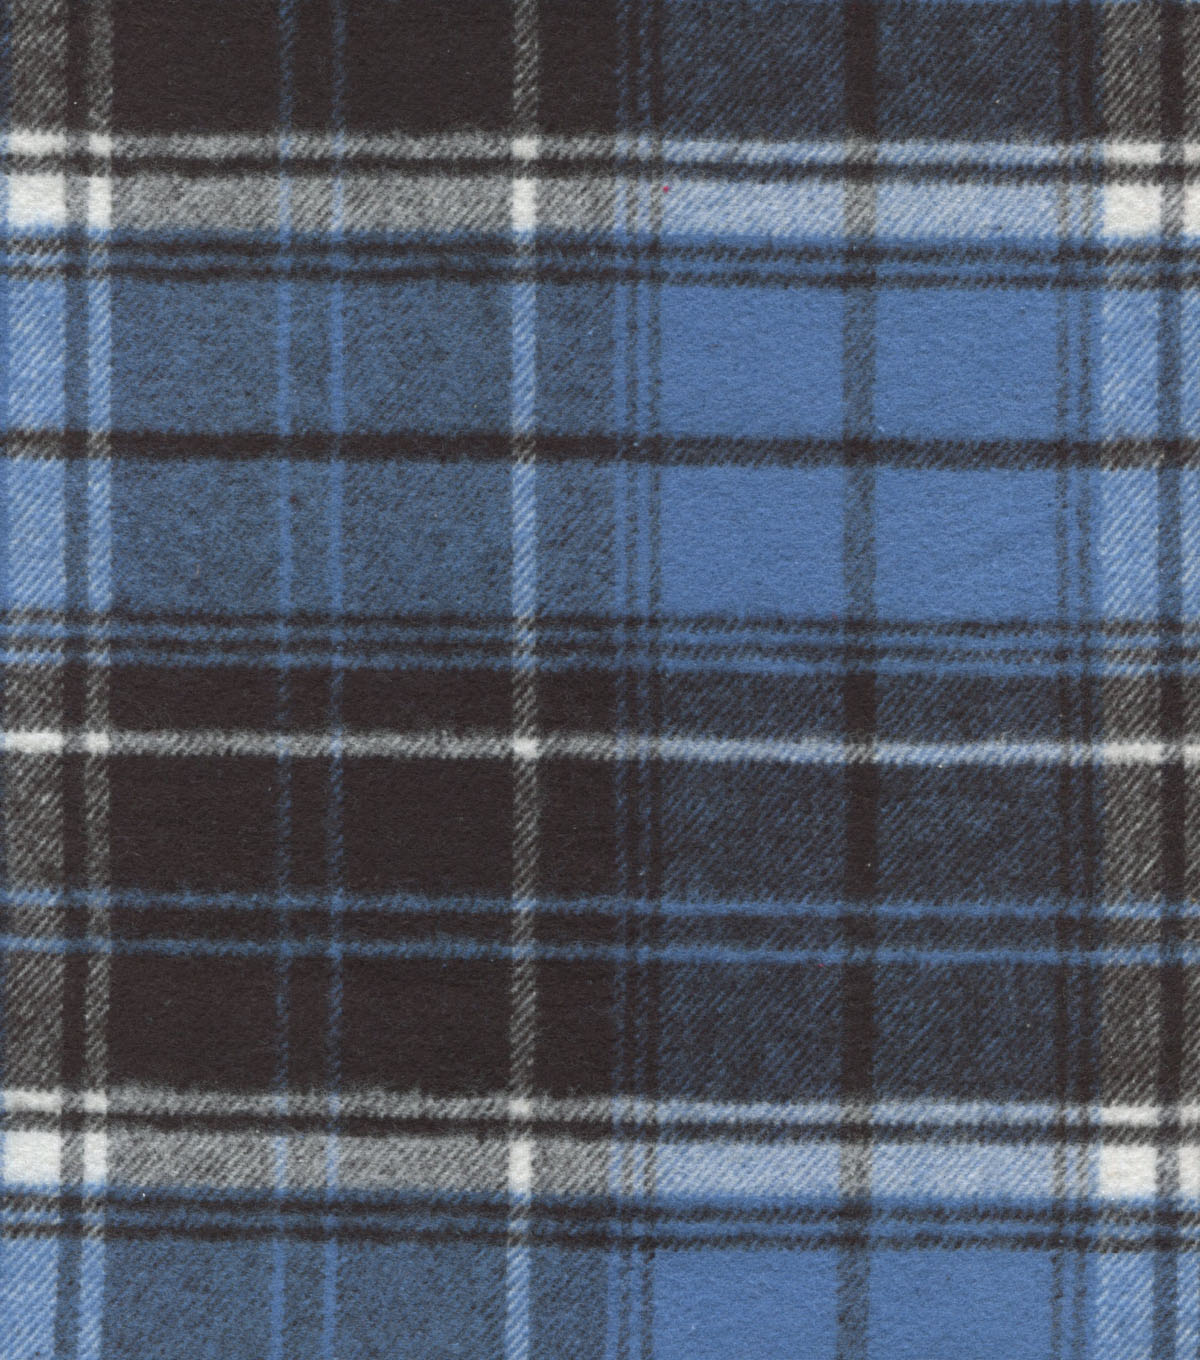 Plaid Brush Cotton Fabric -Navy, Blue & White